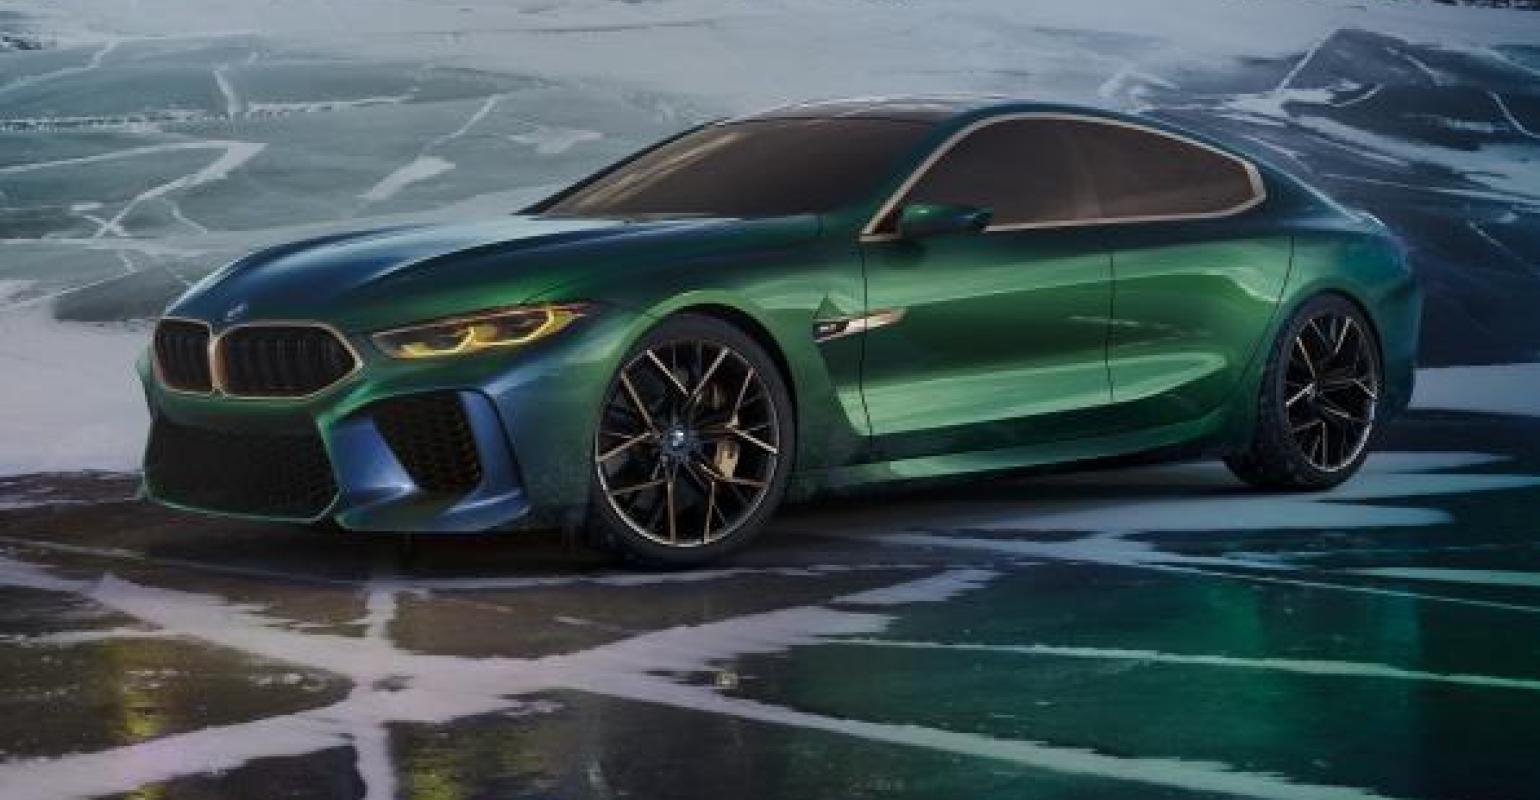 Bmw Automaker Looks Further Upmarket With Concept M8 Gran Coupe